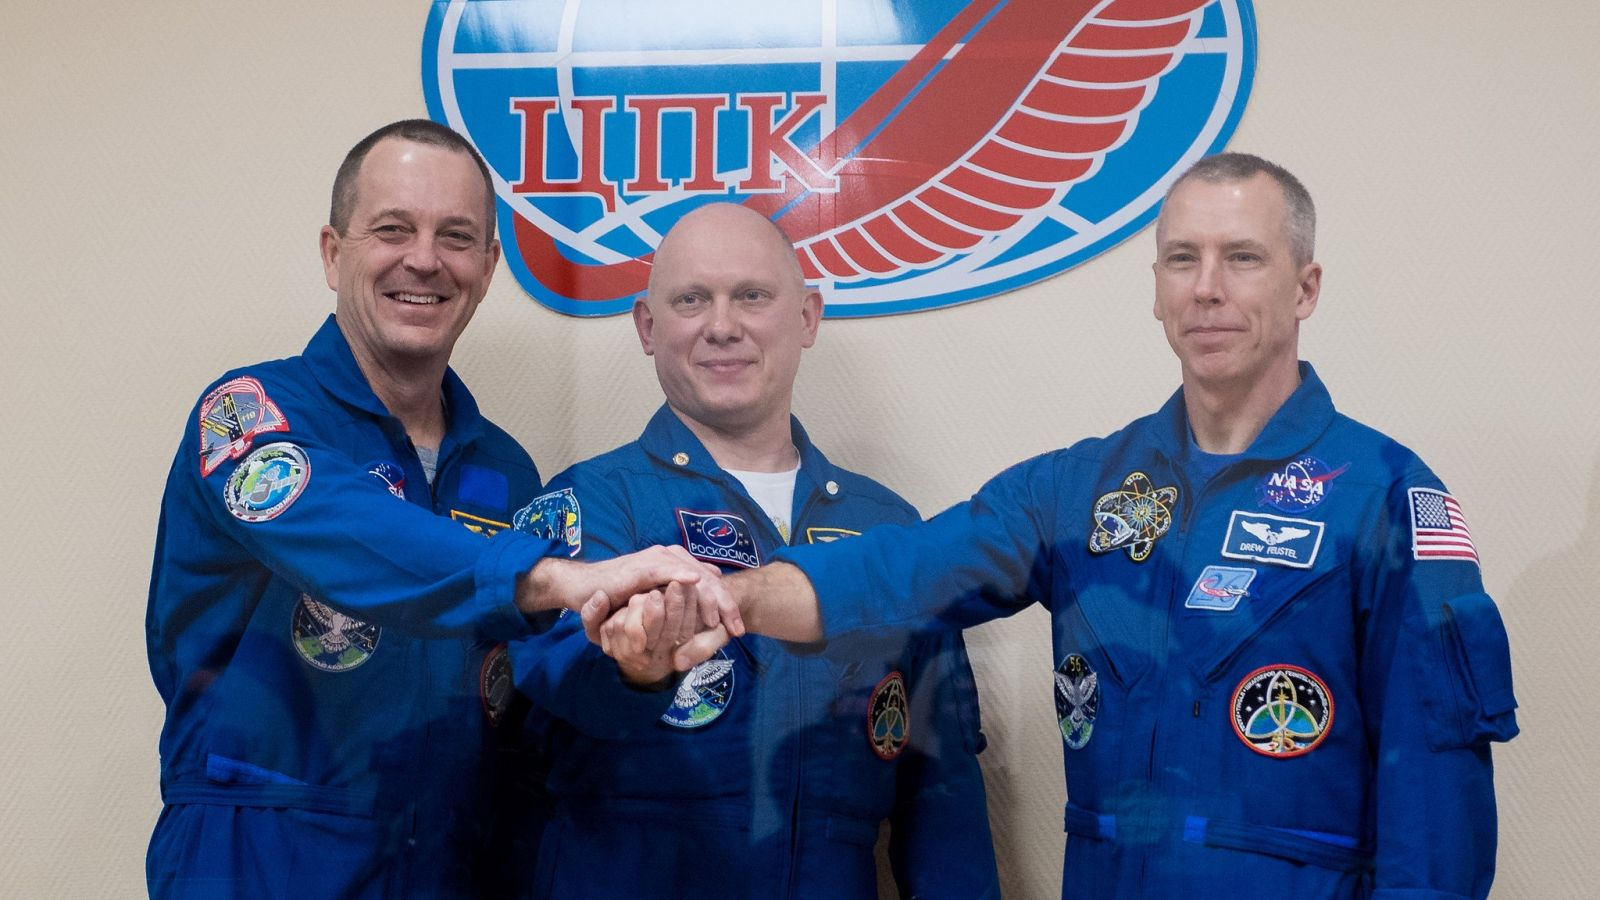 The Soyuz MS-08 crew poses for a picture. NASA's Ricky Arnold, left, Russia's Oleg Artemyev, center, and NASA's Drew Feustel are set to launch to the ISS on March 21, 2018. Photo Credit: Joel Kowsky / NASA